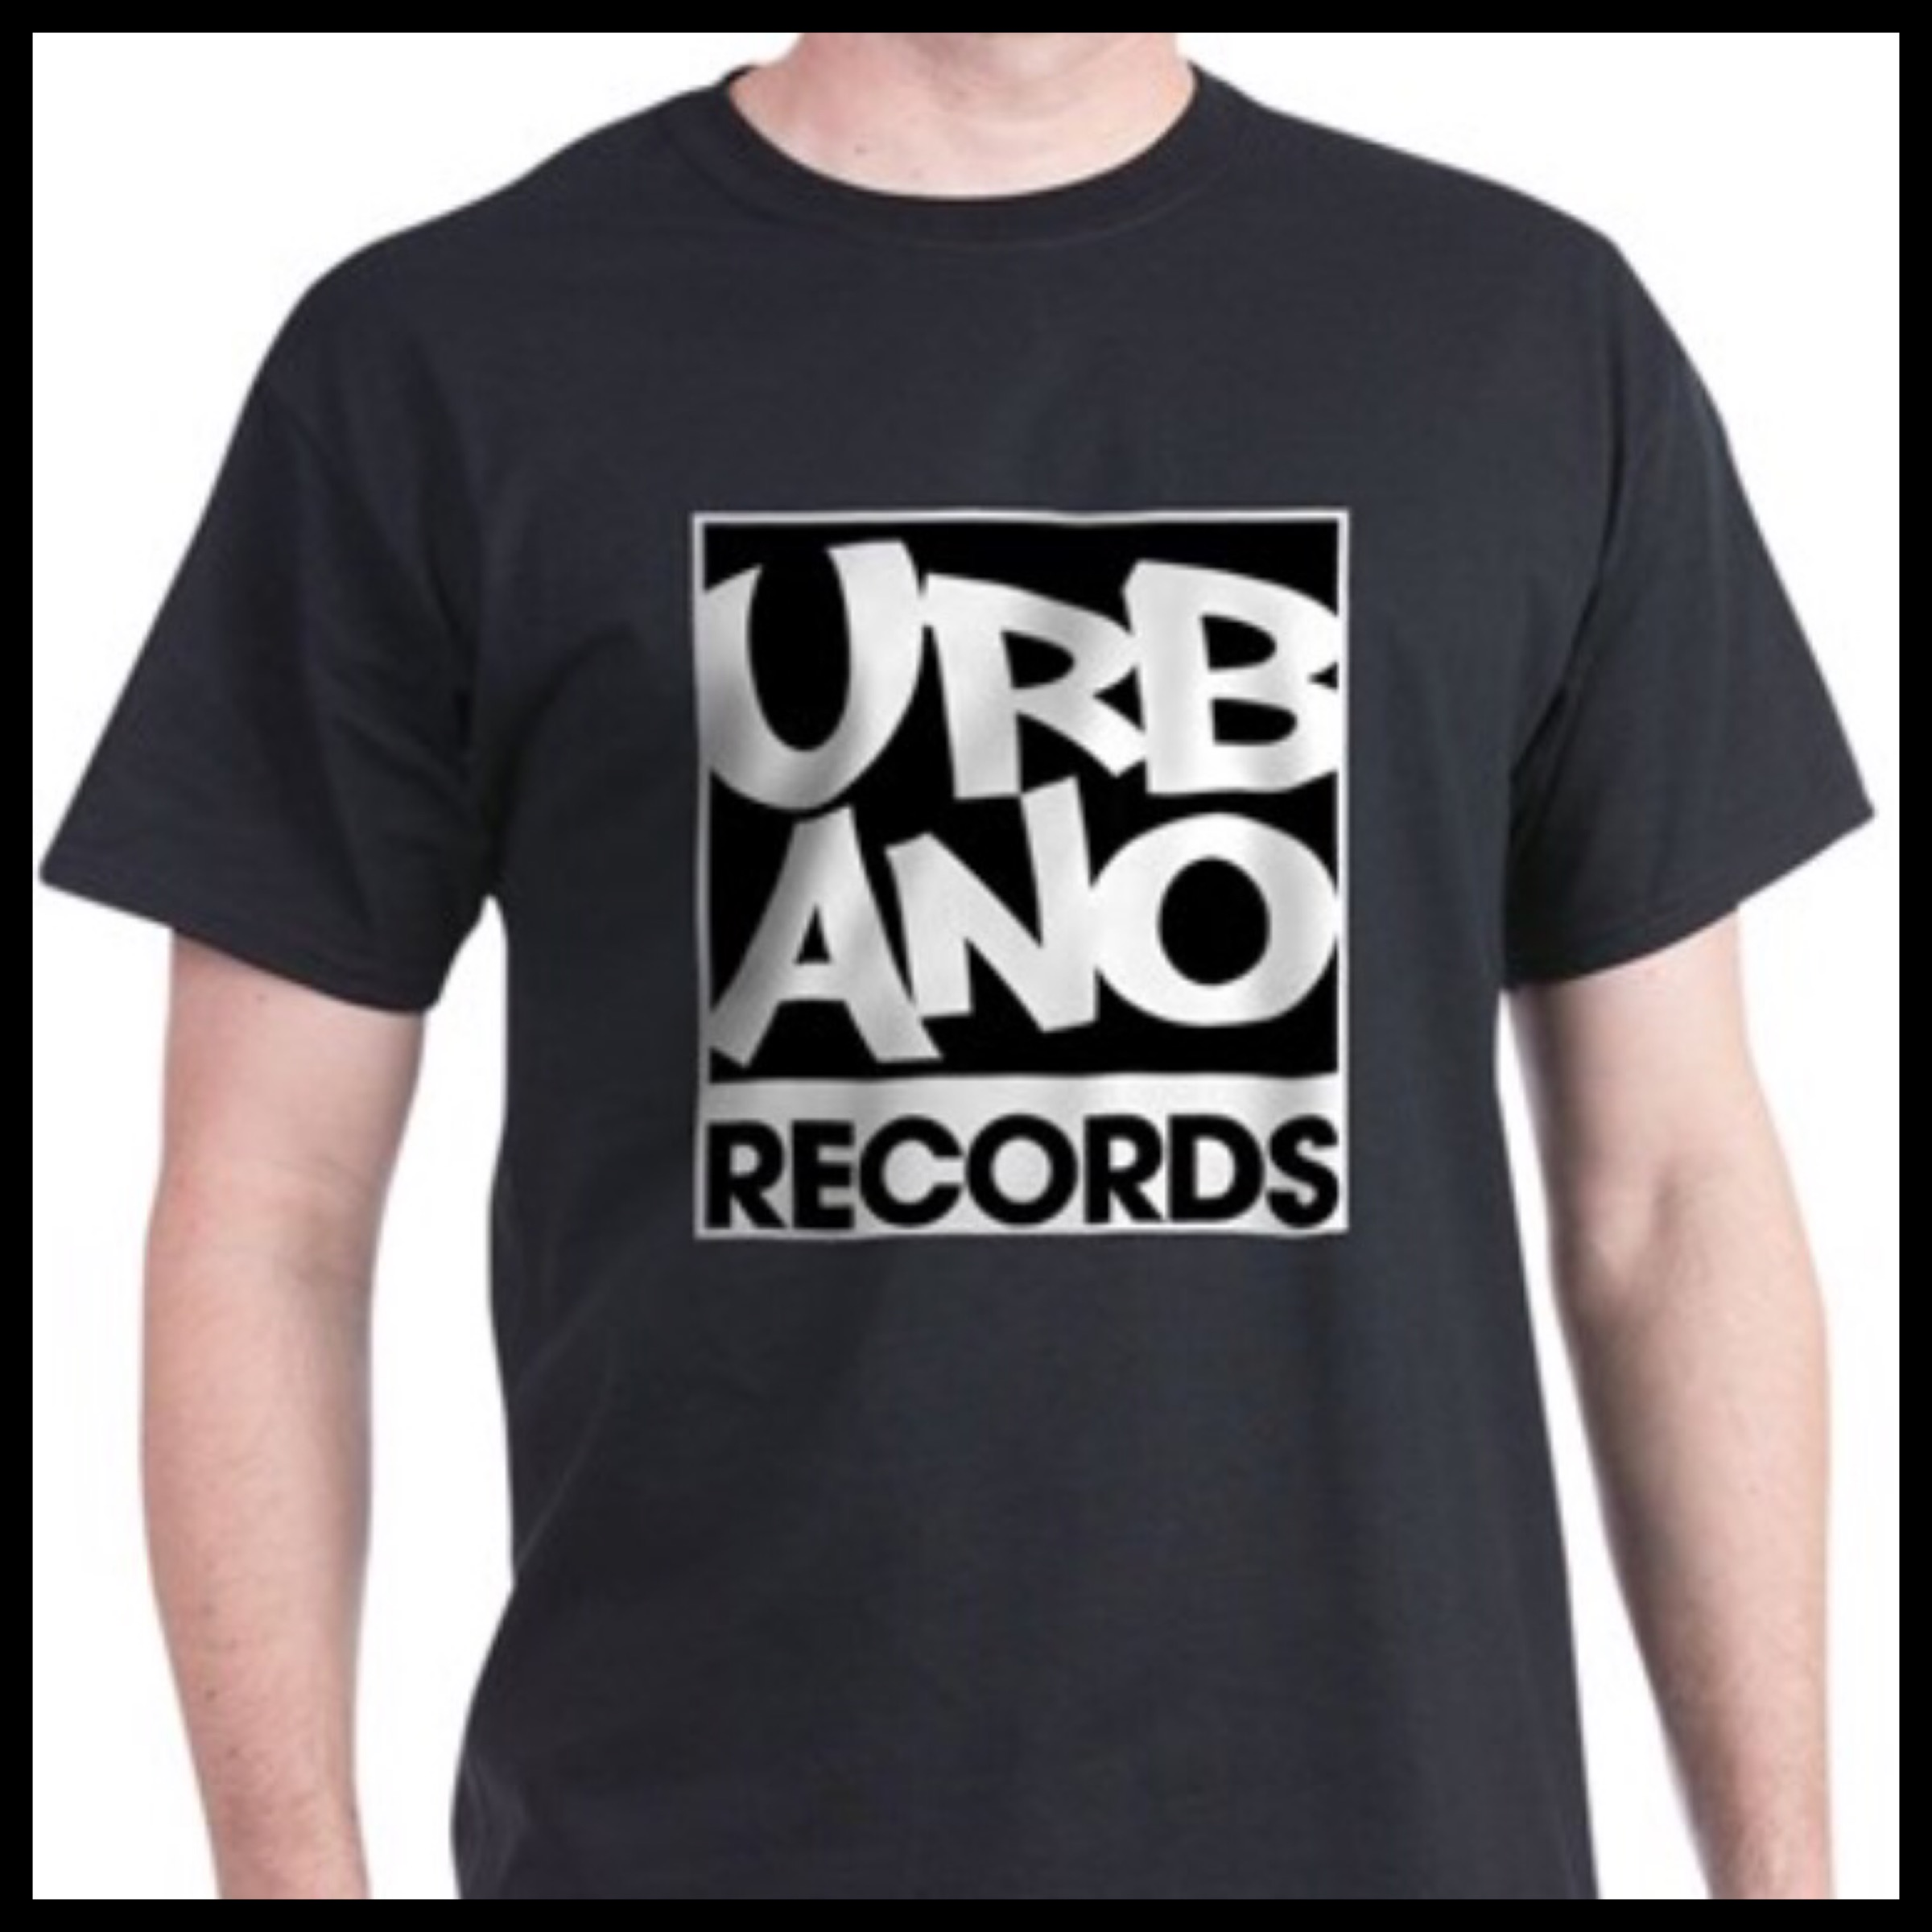 Urbano Records Black T-Shirt